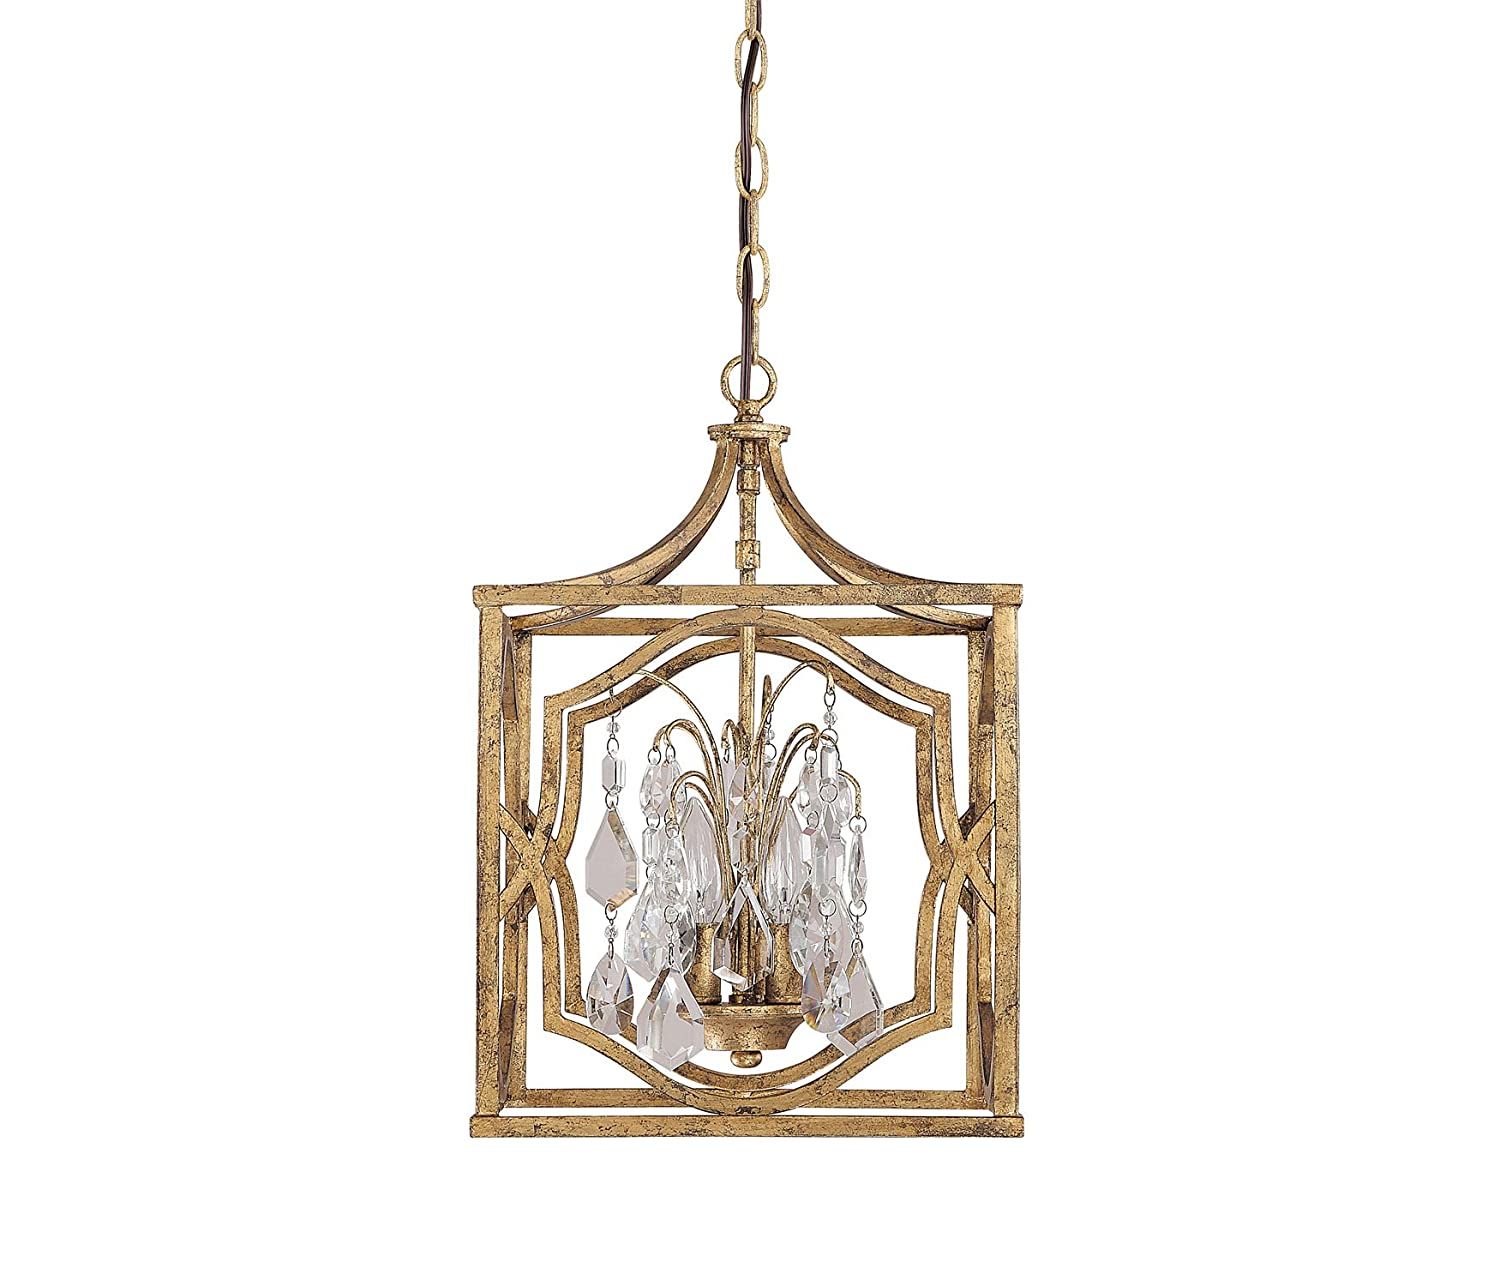 capital lighting 9481agcr blakely 3light foyer fixture antique gold finish with clear crystal accents ceiling pendant fixtures amazoncom - Capital Lighting